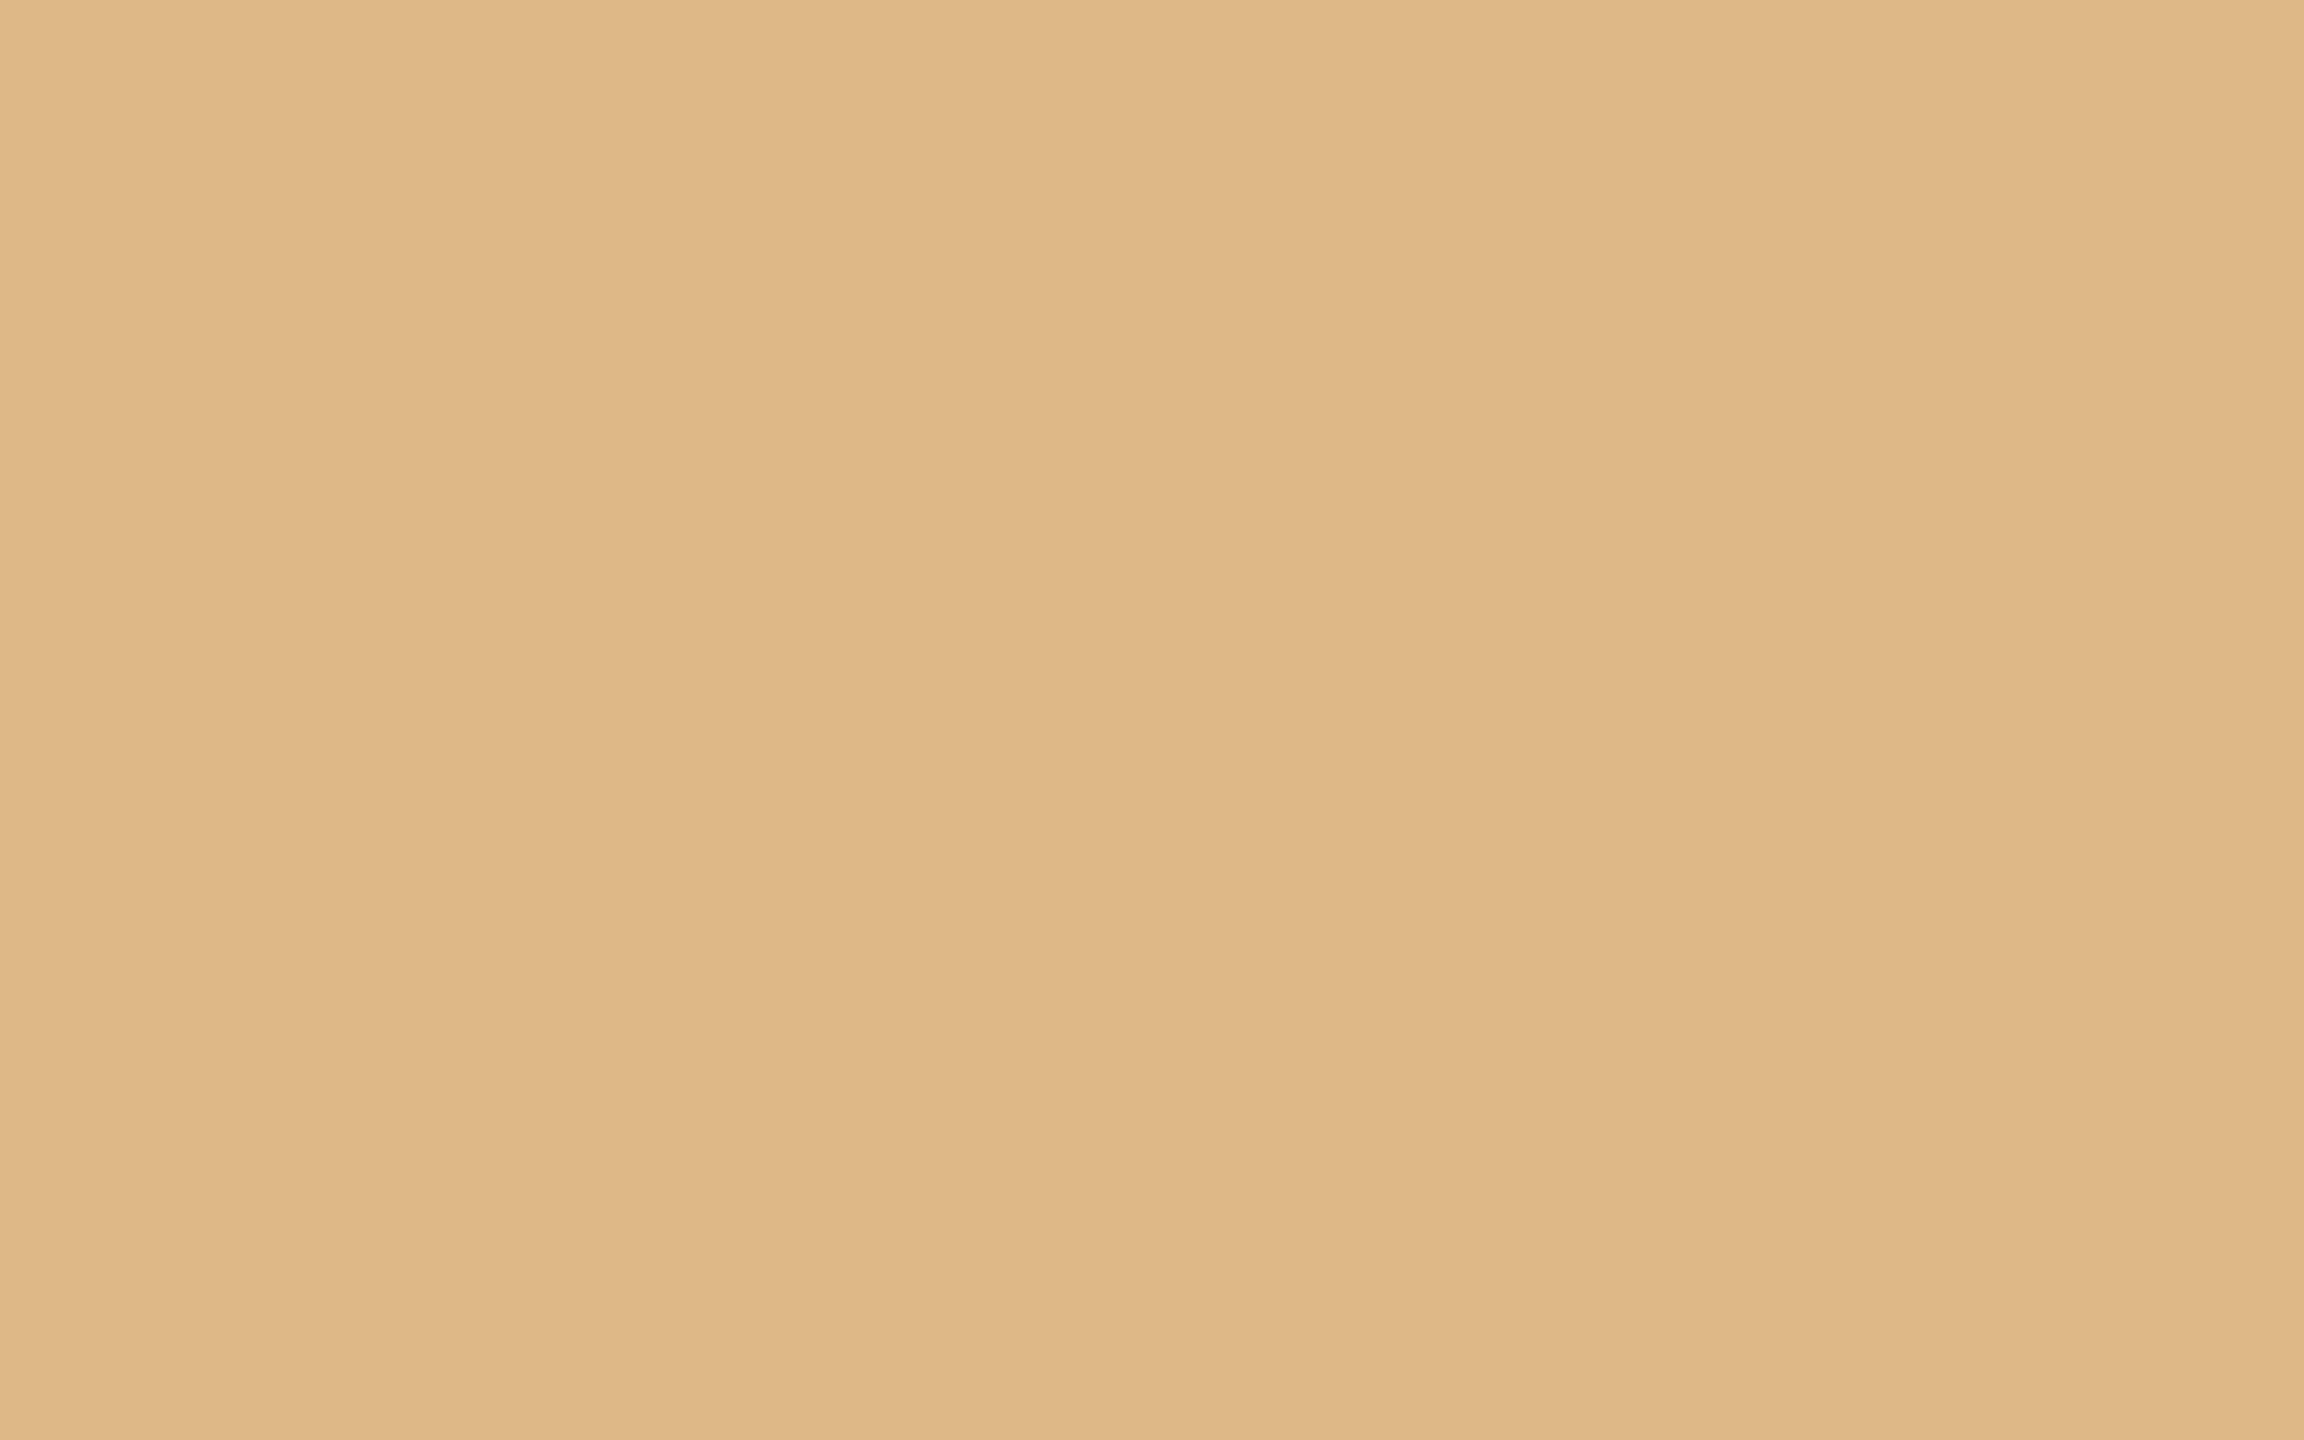 2304x1440 Burlywood Solid Color Background